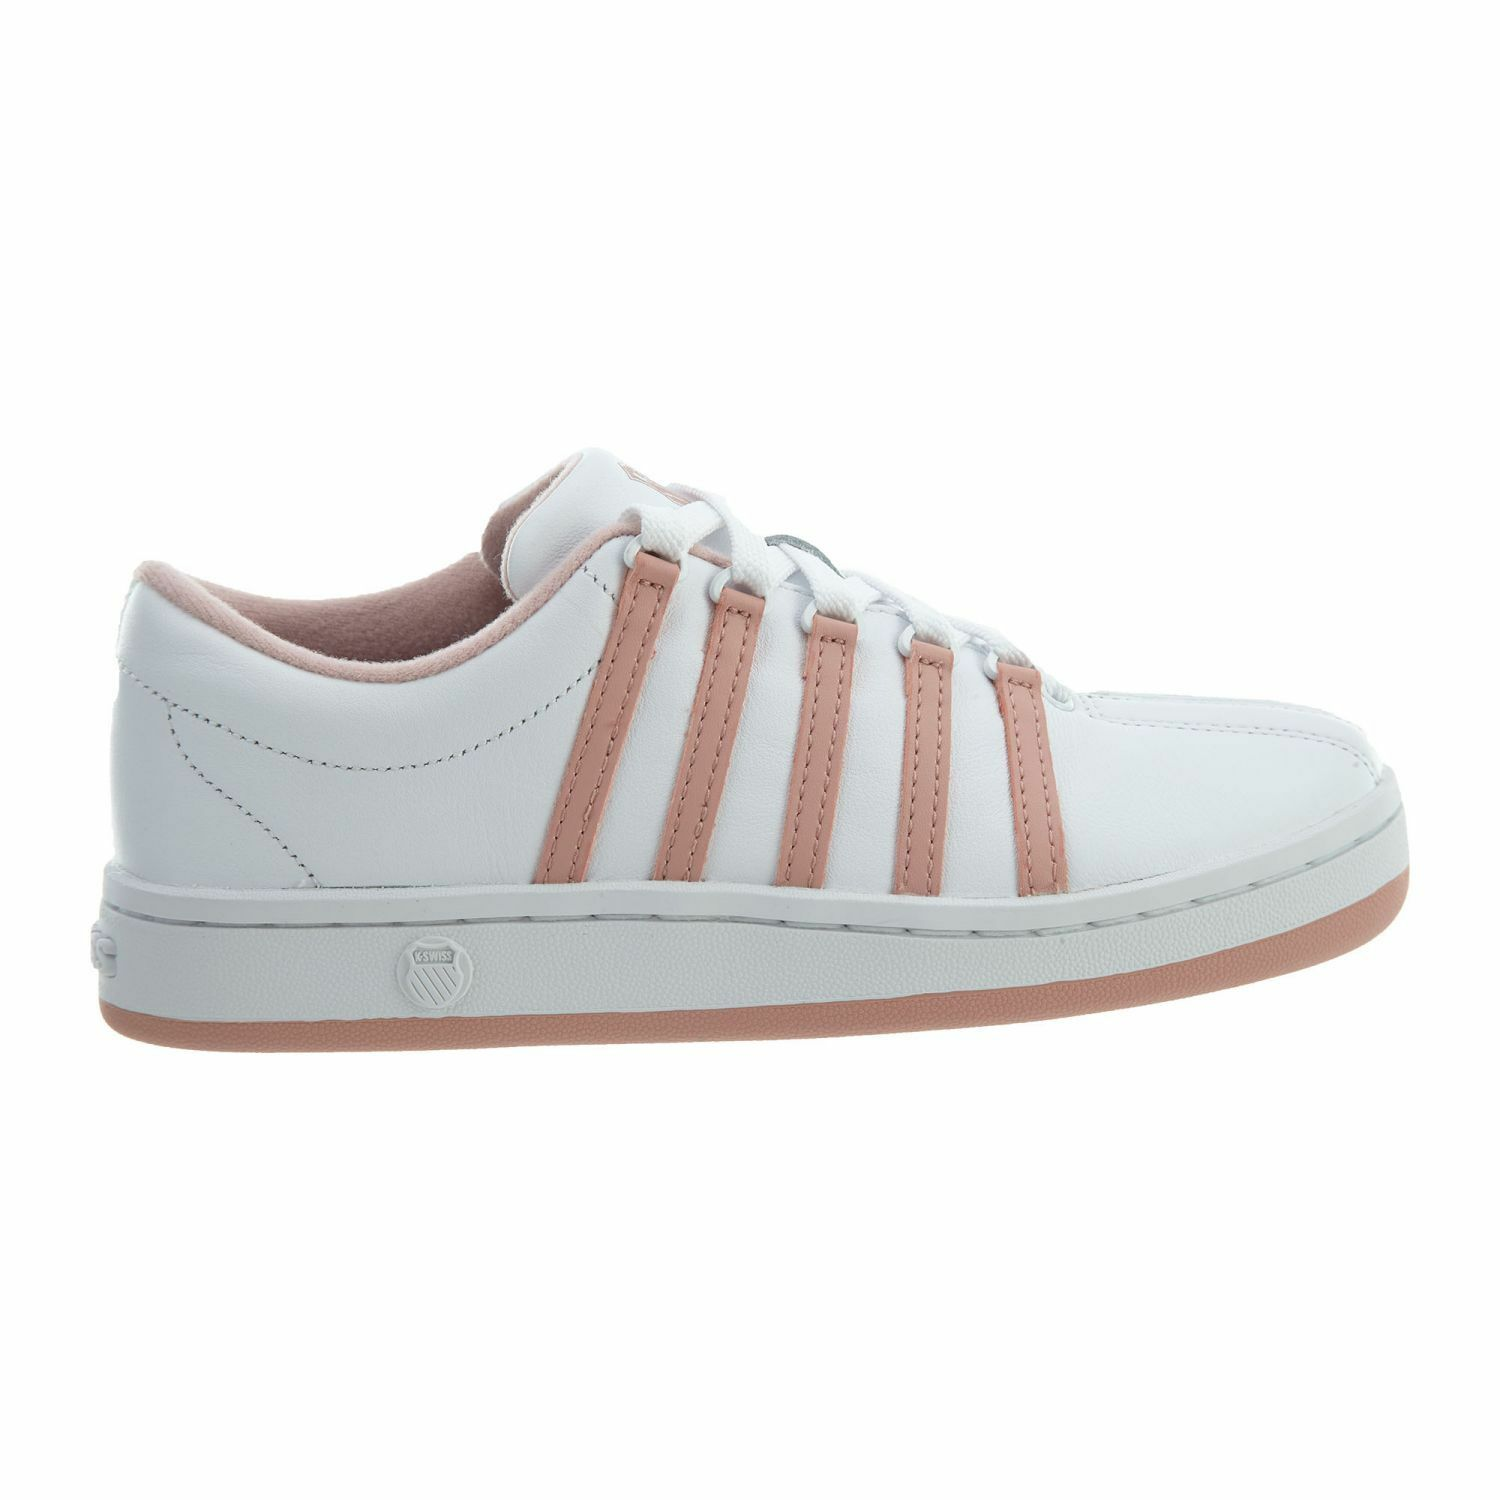 K-Swiss Classic 88 Womens 92248-145 White Cameo Pink Leather shoes Size 6.5